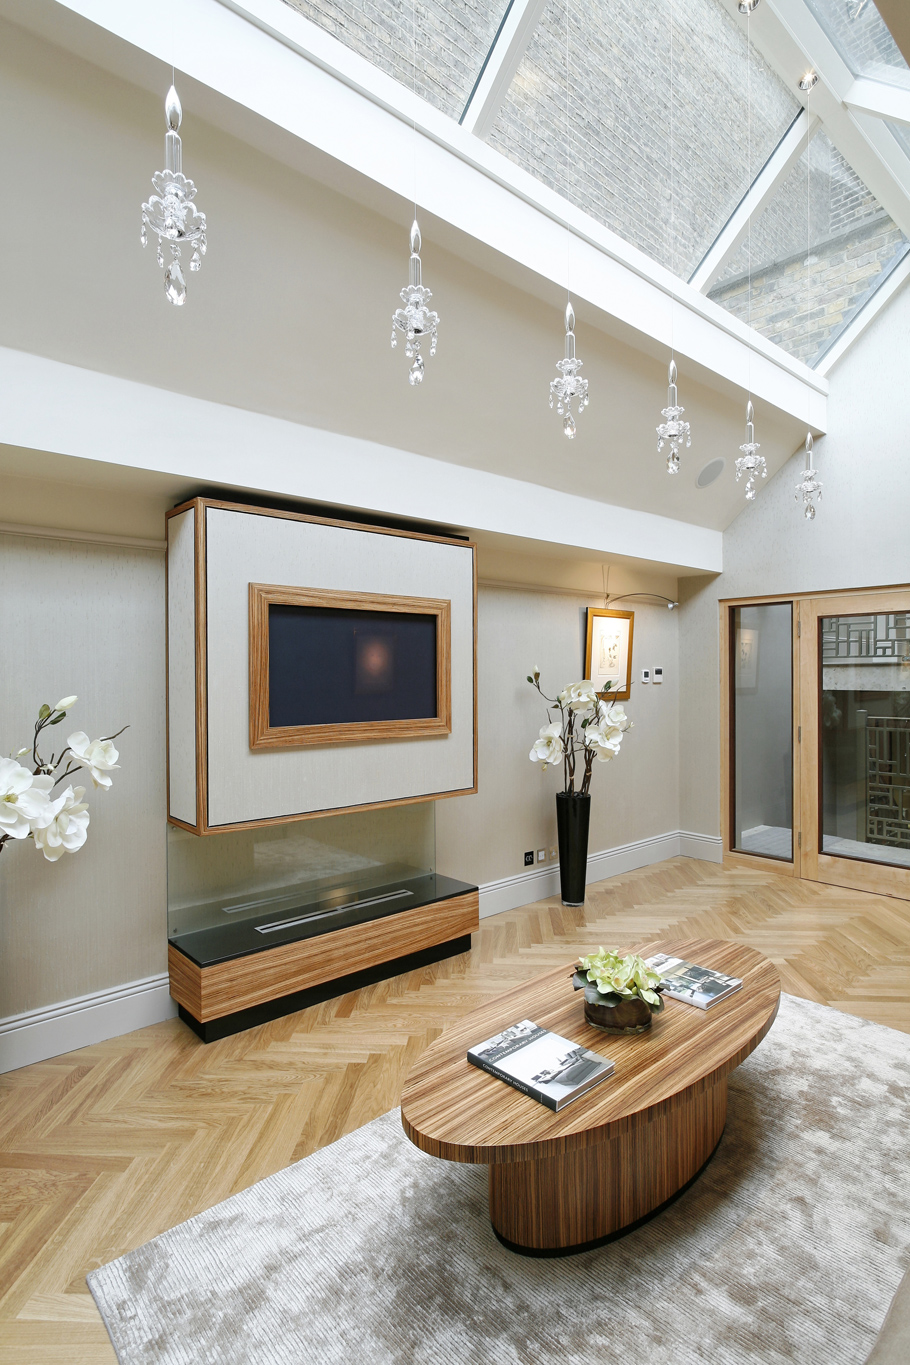 Eaton terrace london by rigby rigby adelto adelto - Maison freshwater brewster hjorth architects ...